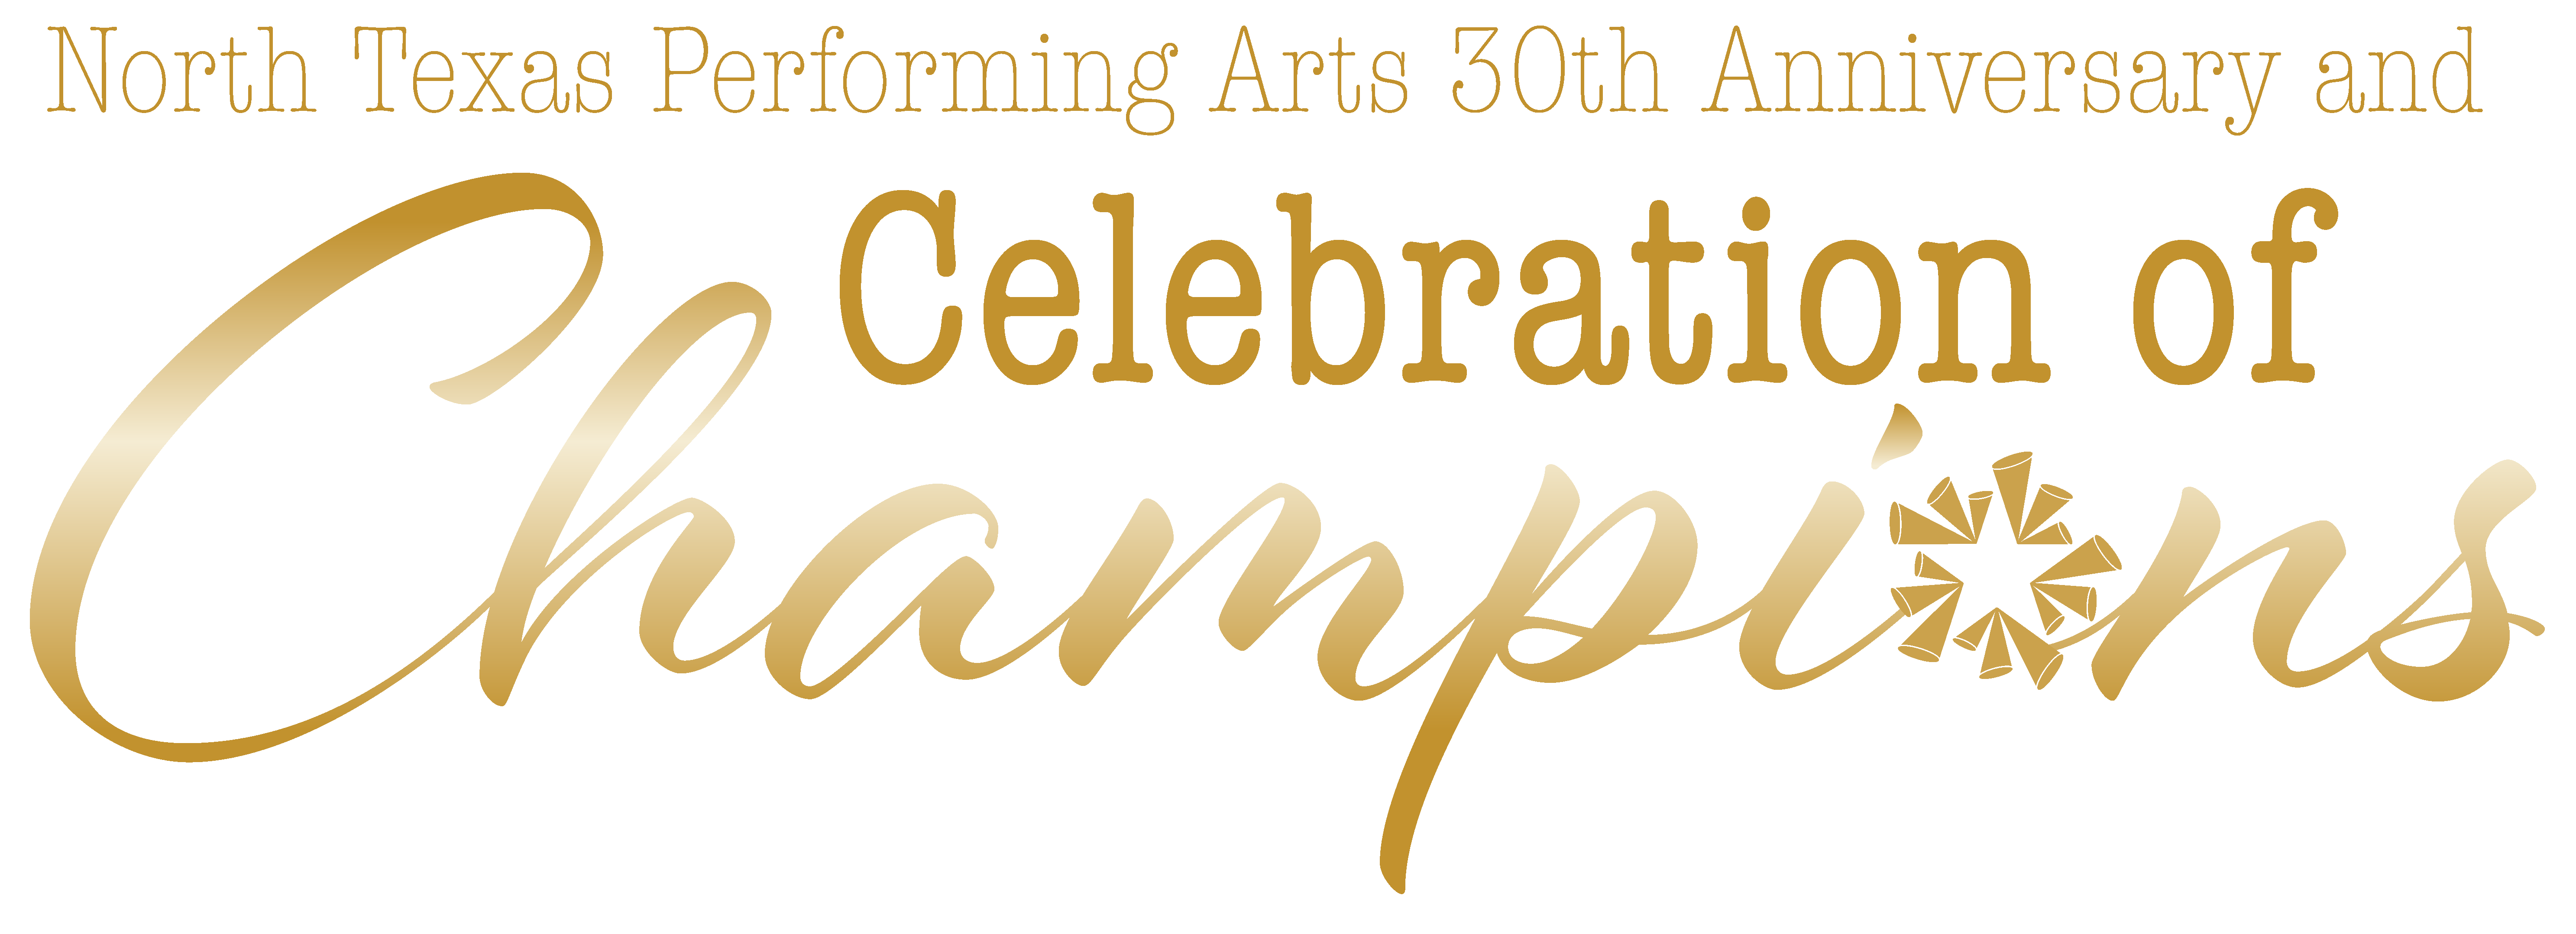 NTPA 30th Anniversary and Celebration of Champions